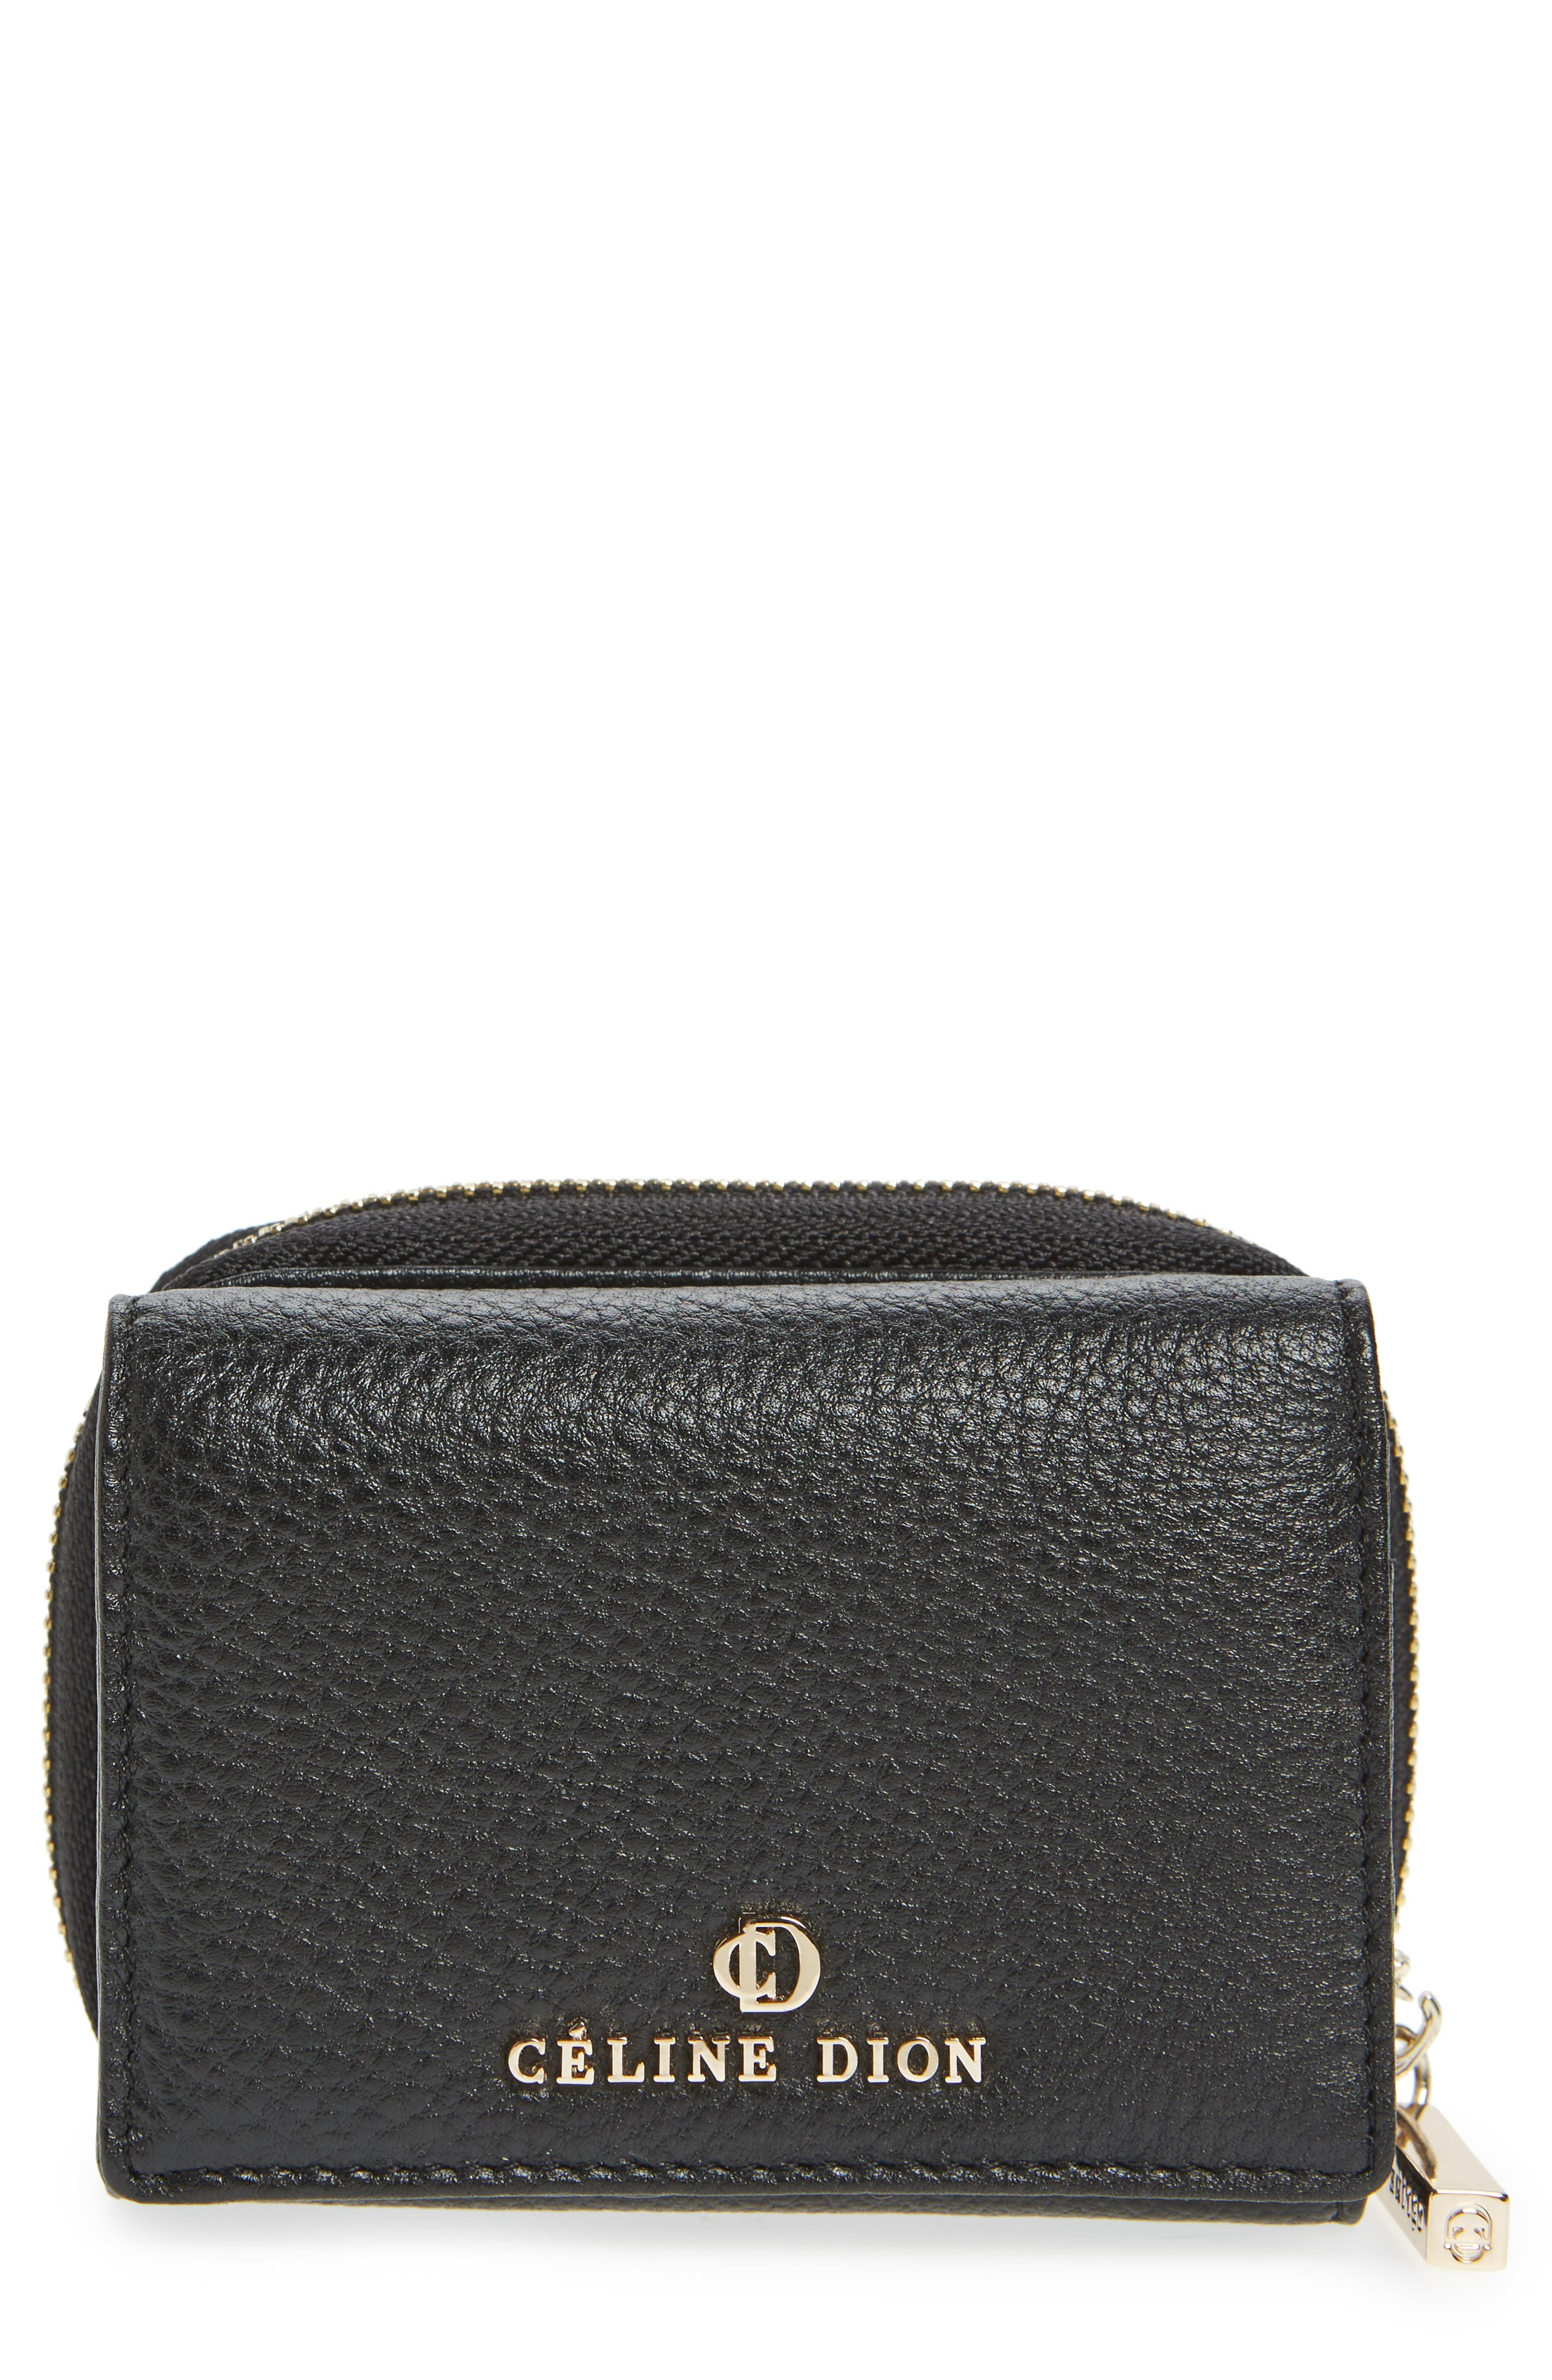 Céline Dion Small Adagio Leather Wallet,                         Main,                         color, Black